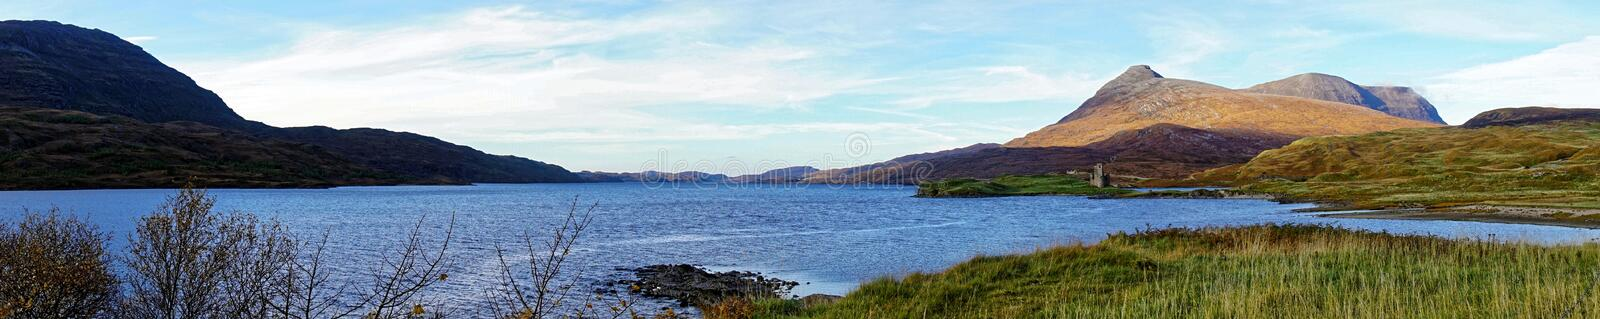 Panorama of Scottish Loch and Mountains. A highland Scottish loch and mountains in autumn stock photos